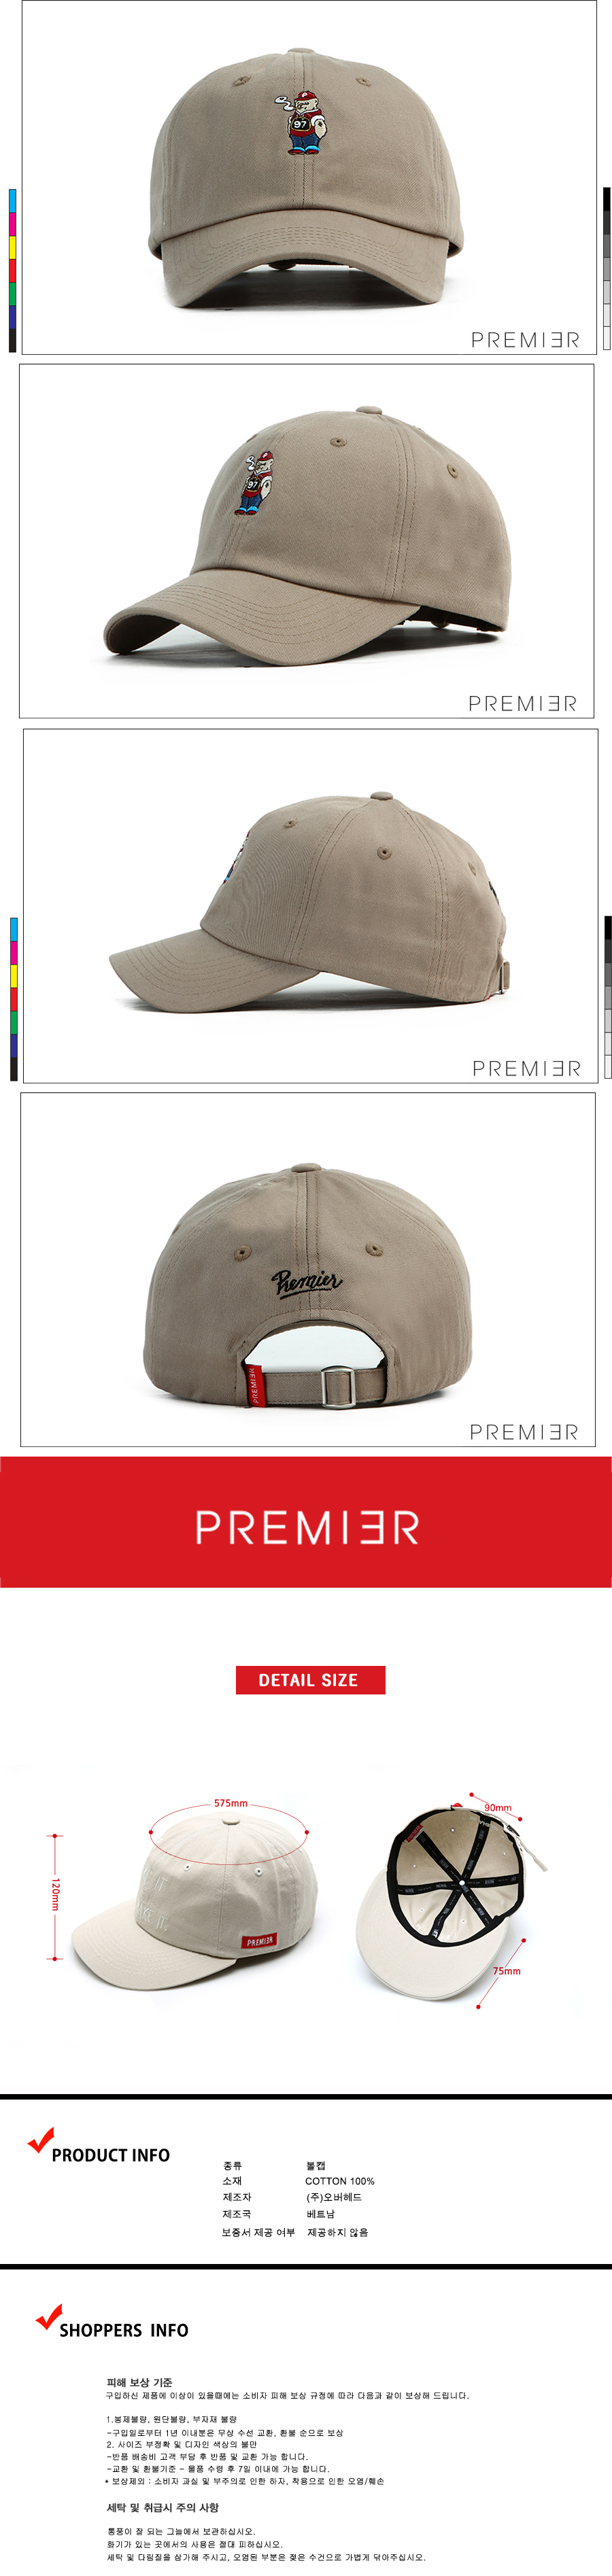 [ PREMIER ] [Premier] Ball Cap 97 Bear Mud (P934)